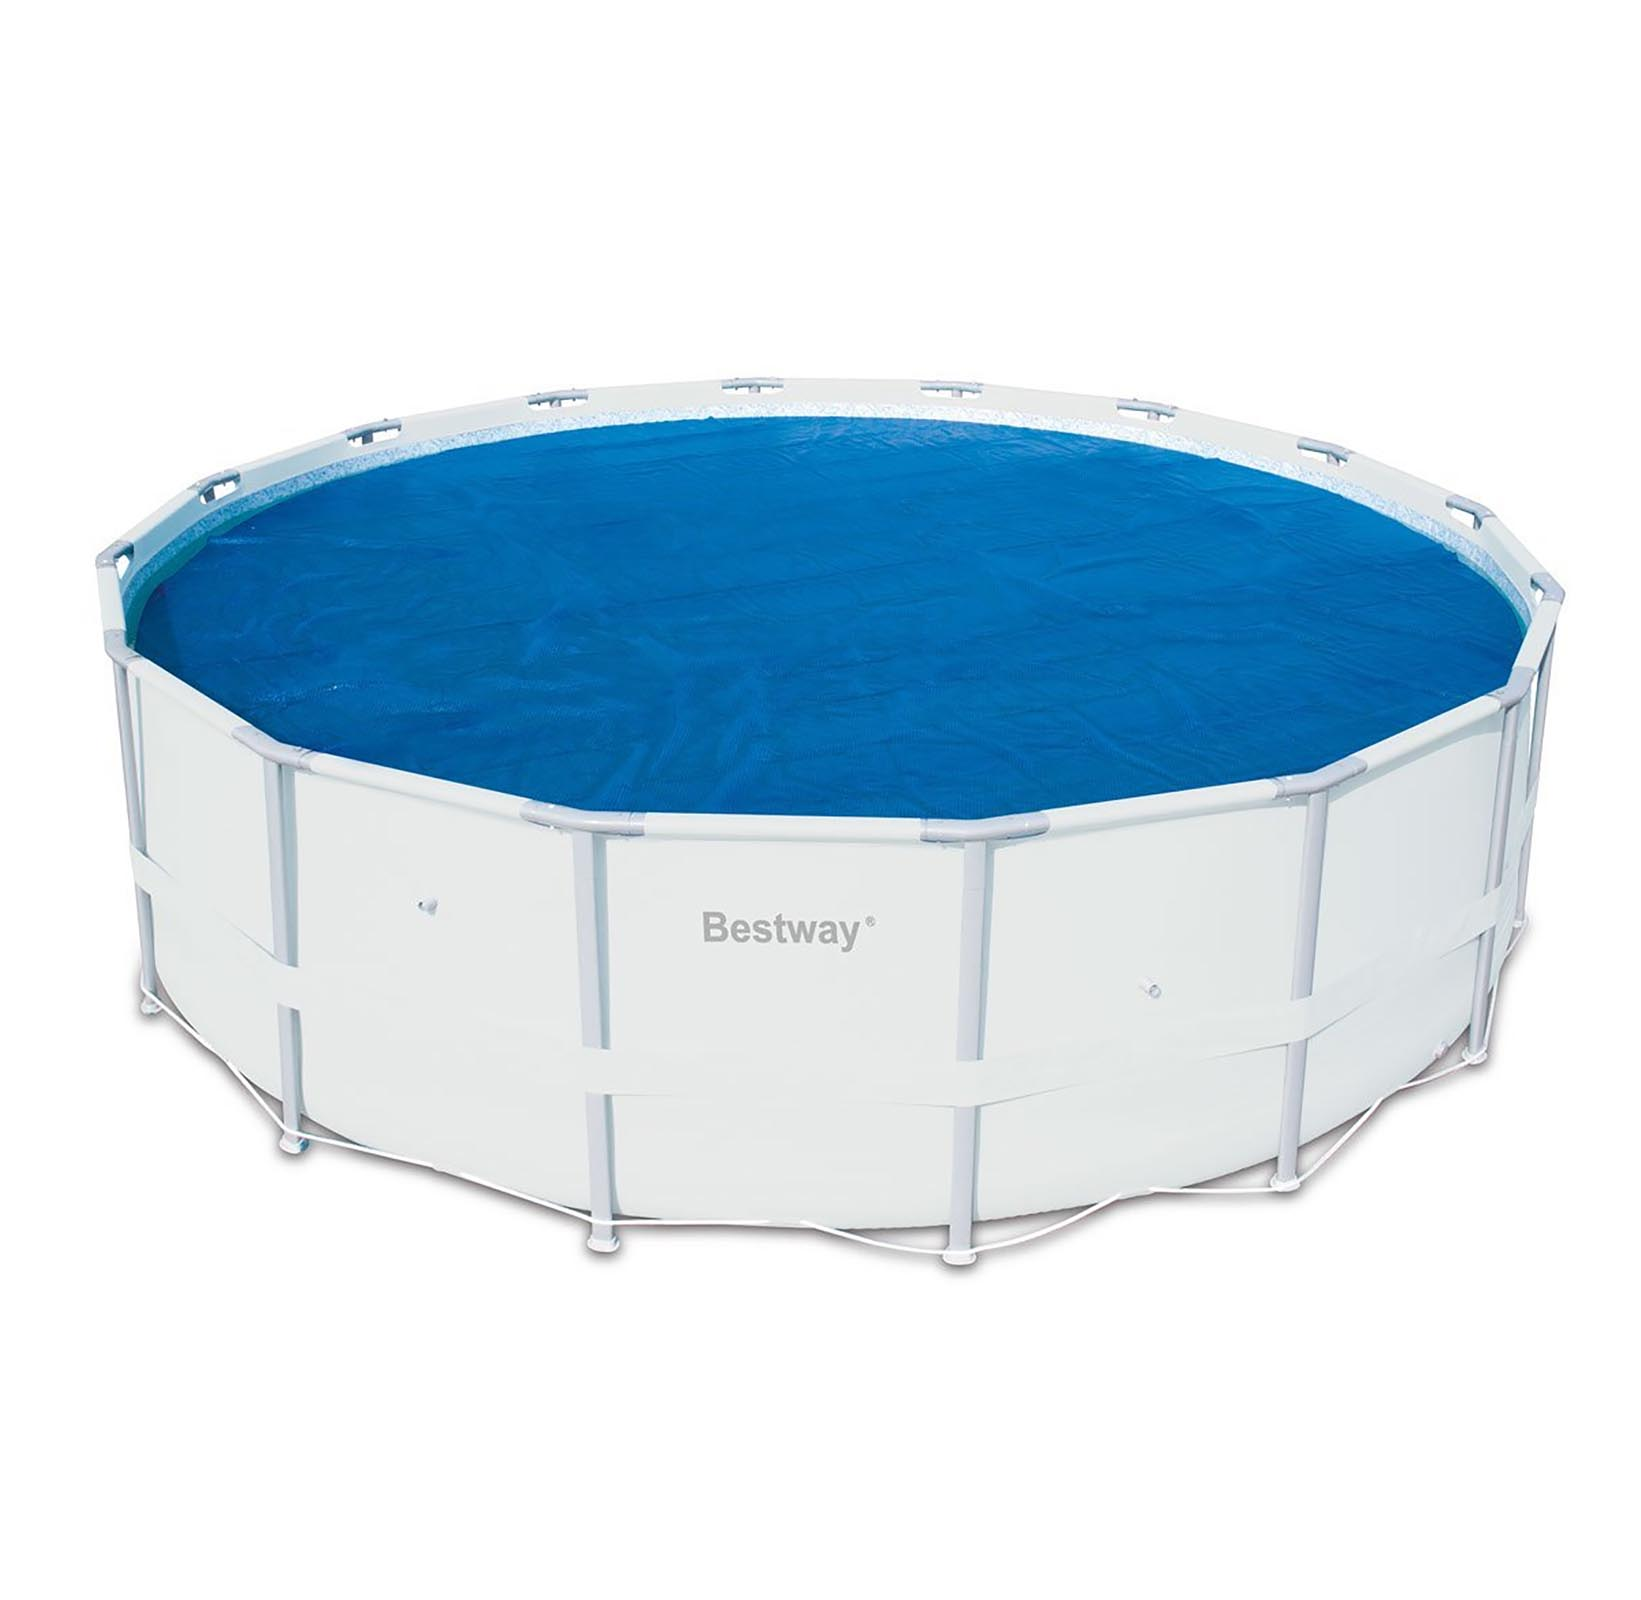 Bestway 14 39 Round Floating Above Ground Swimming Pool Solar Heat Cover 58252e 821808582525 Ebay